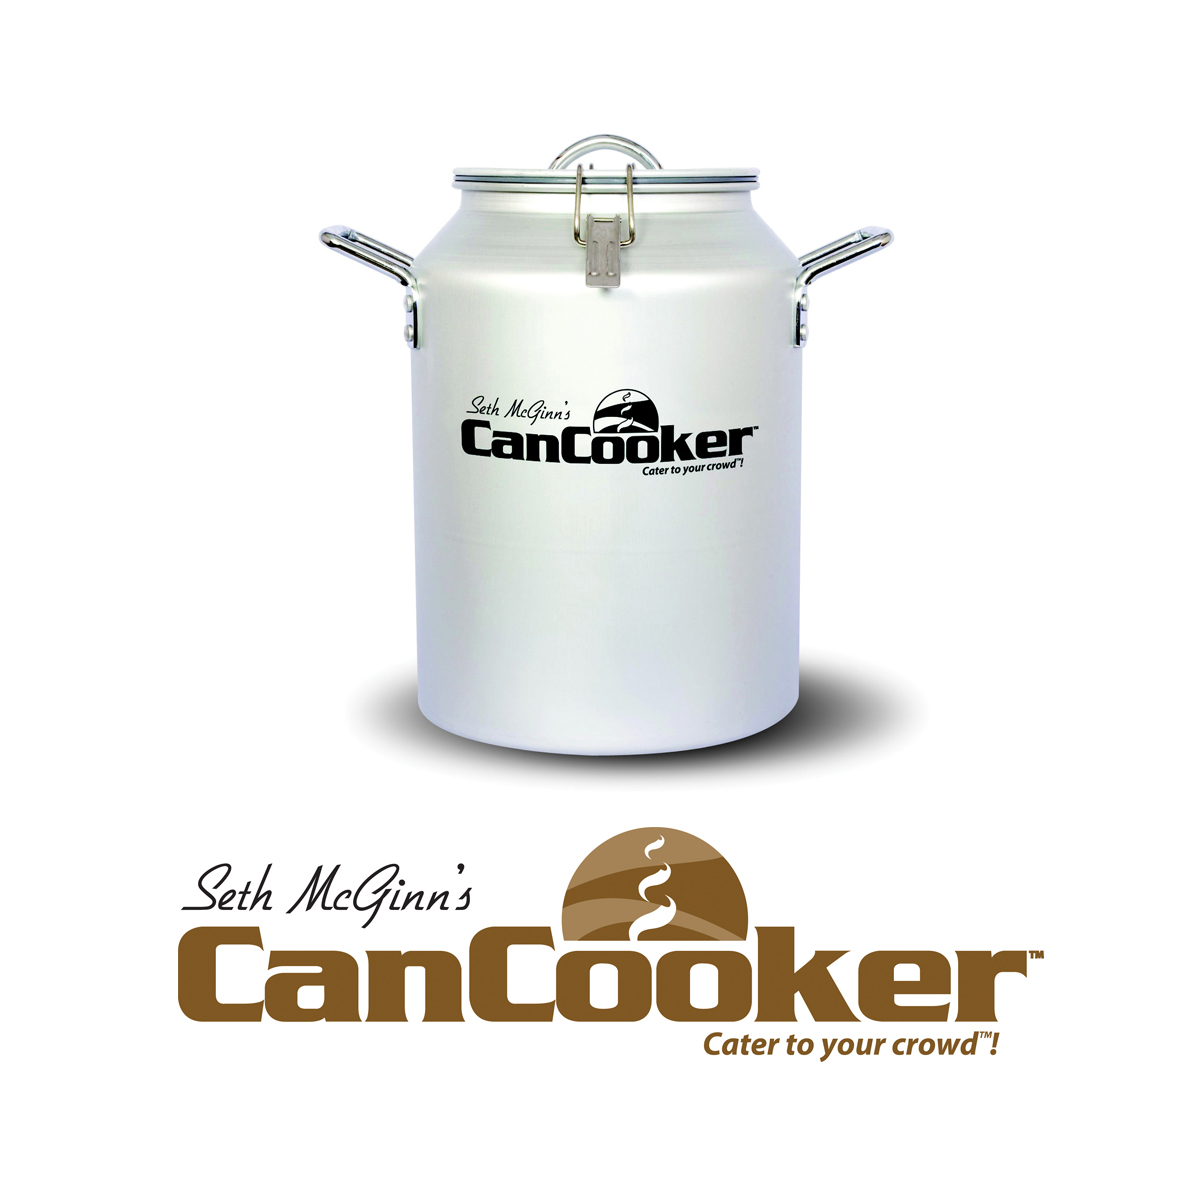 CanCooker